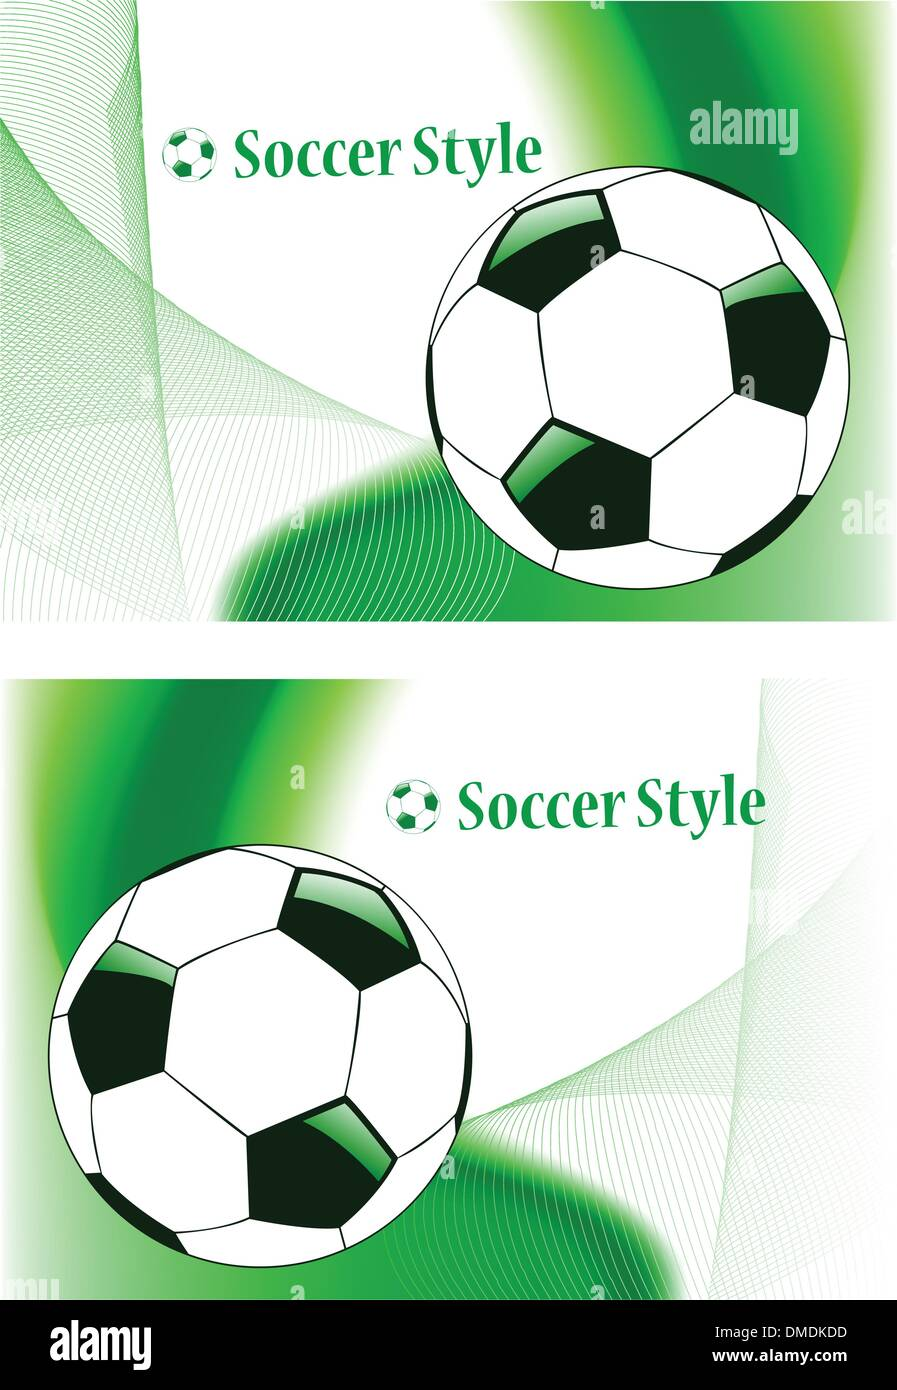 the vector abstract sport soccer background - Stock Image